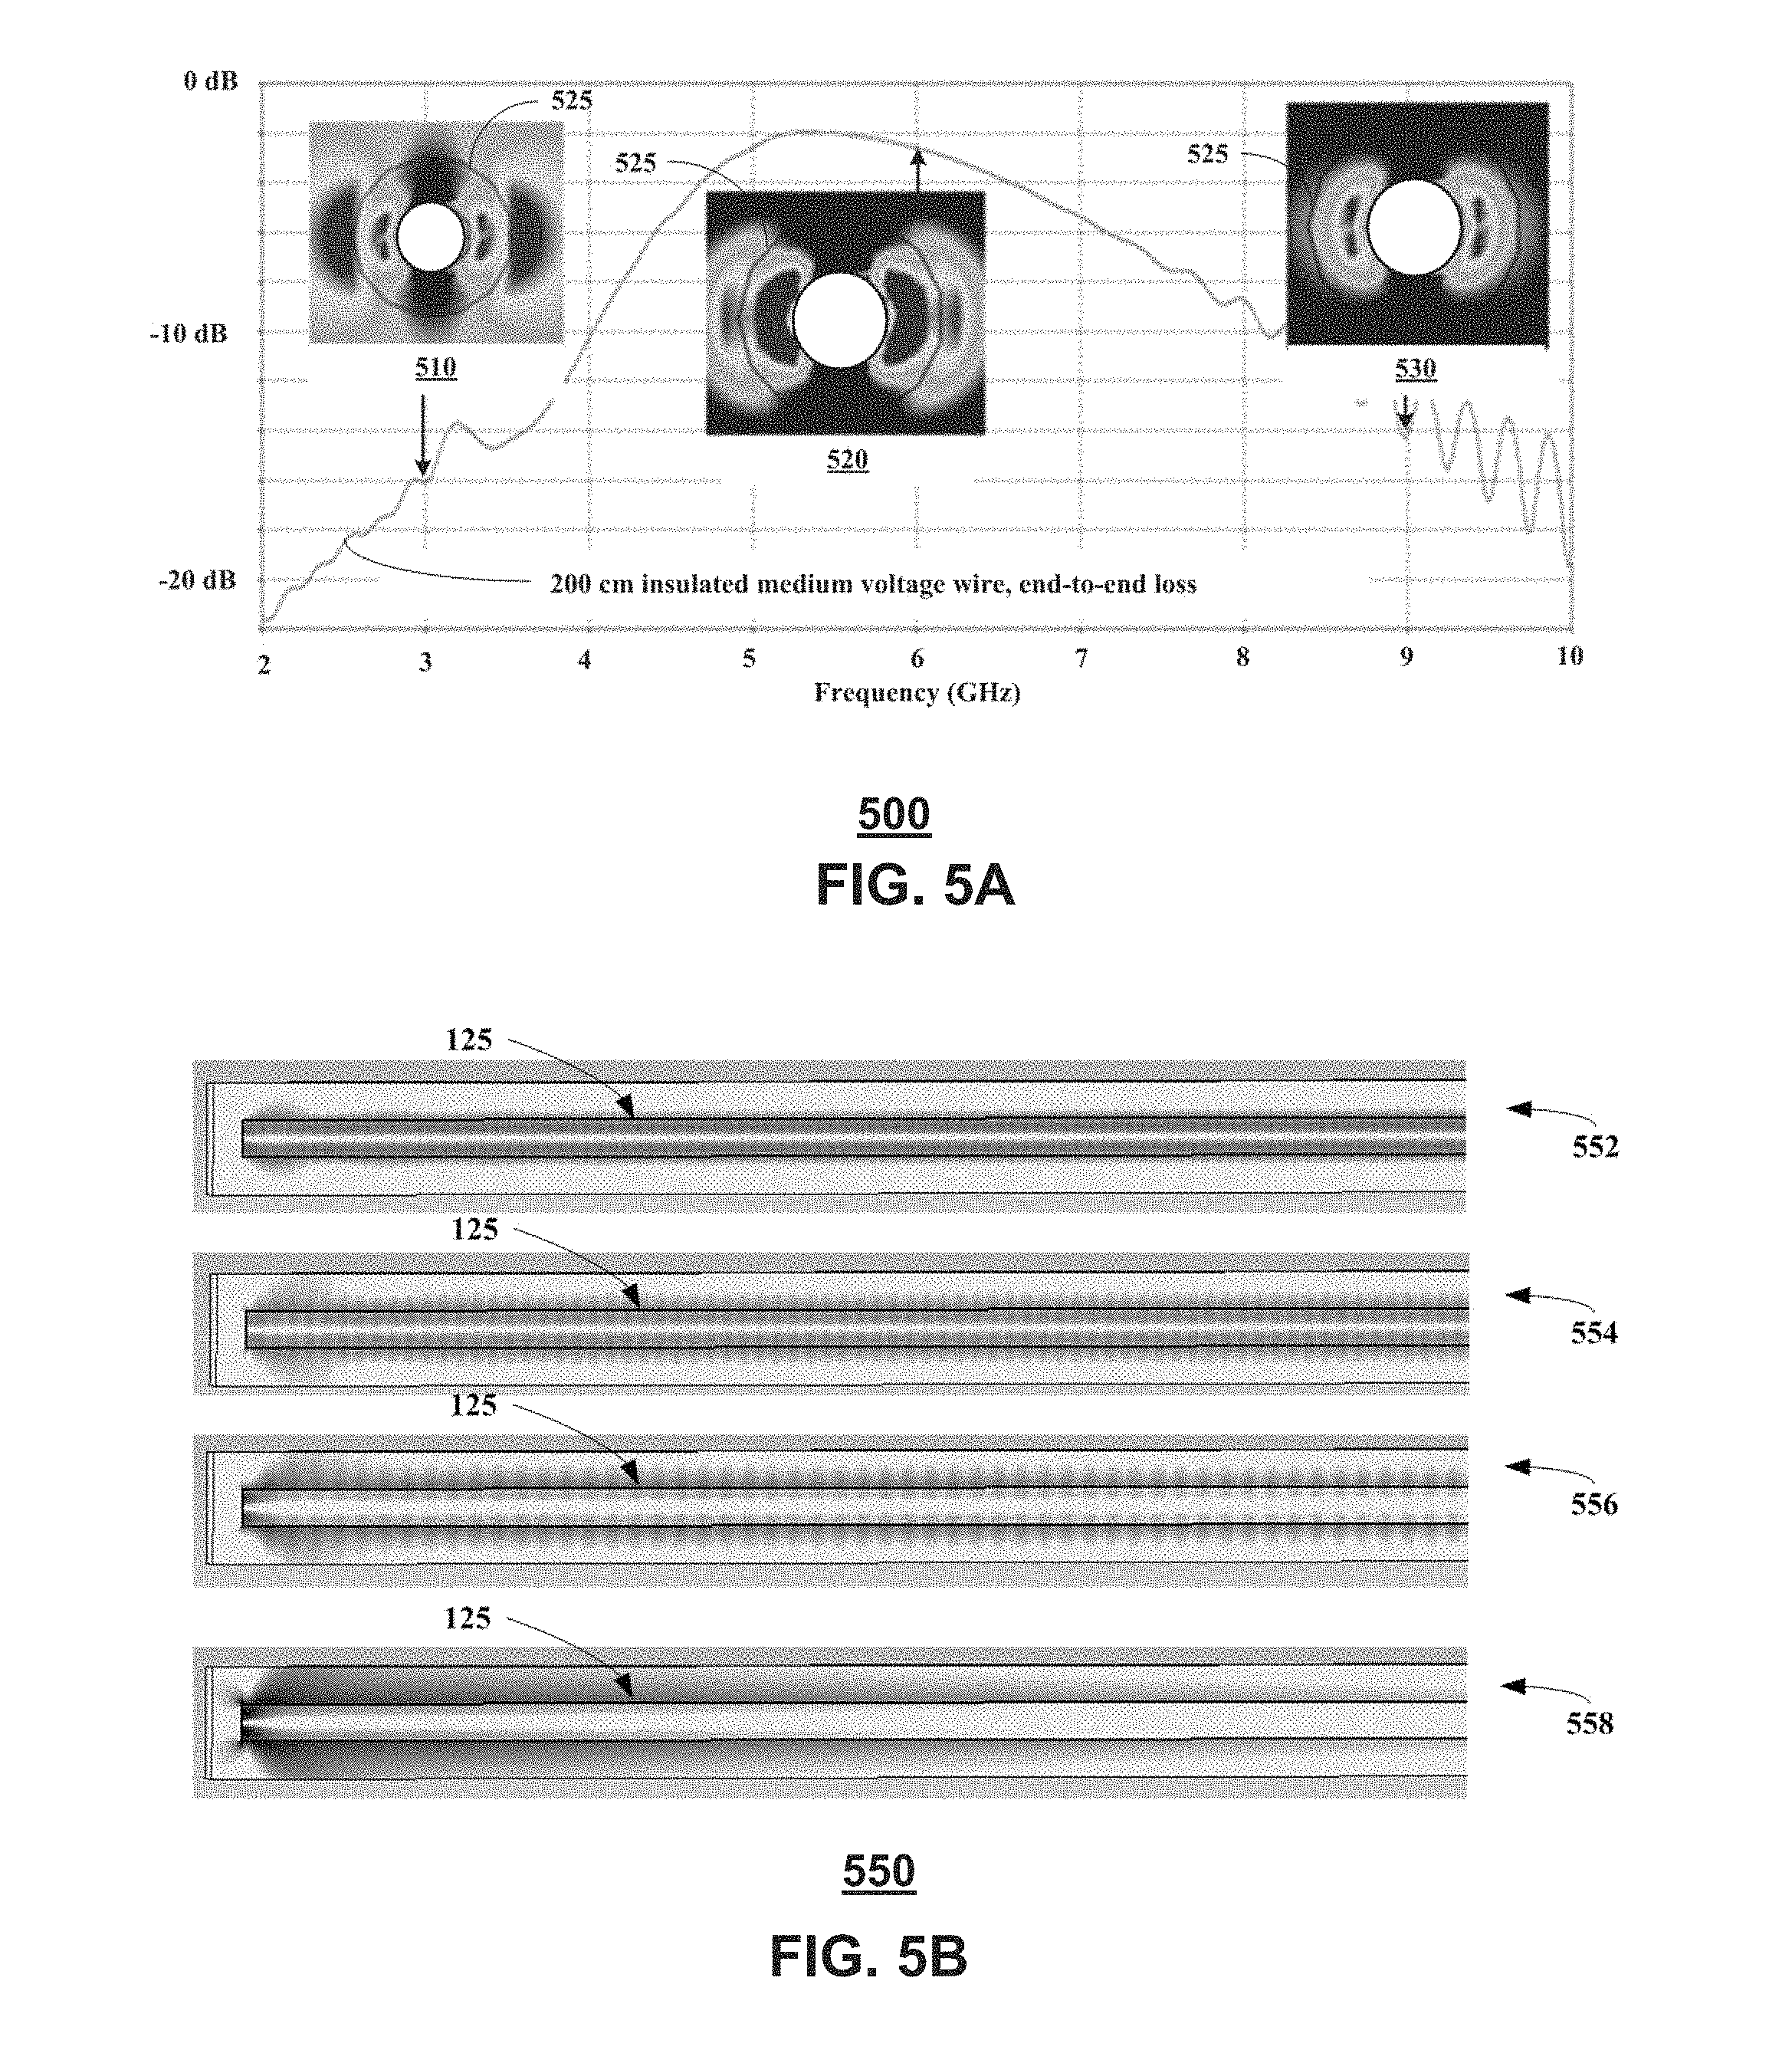 us10090606b2 antenna system with dielectric array and methods for rh patents google com